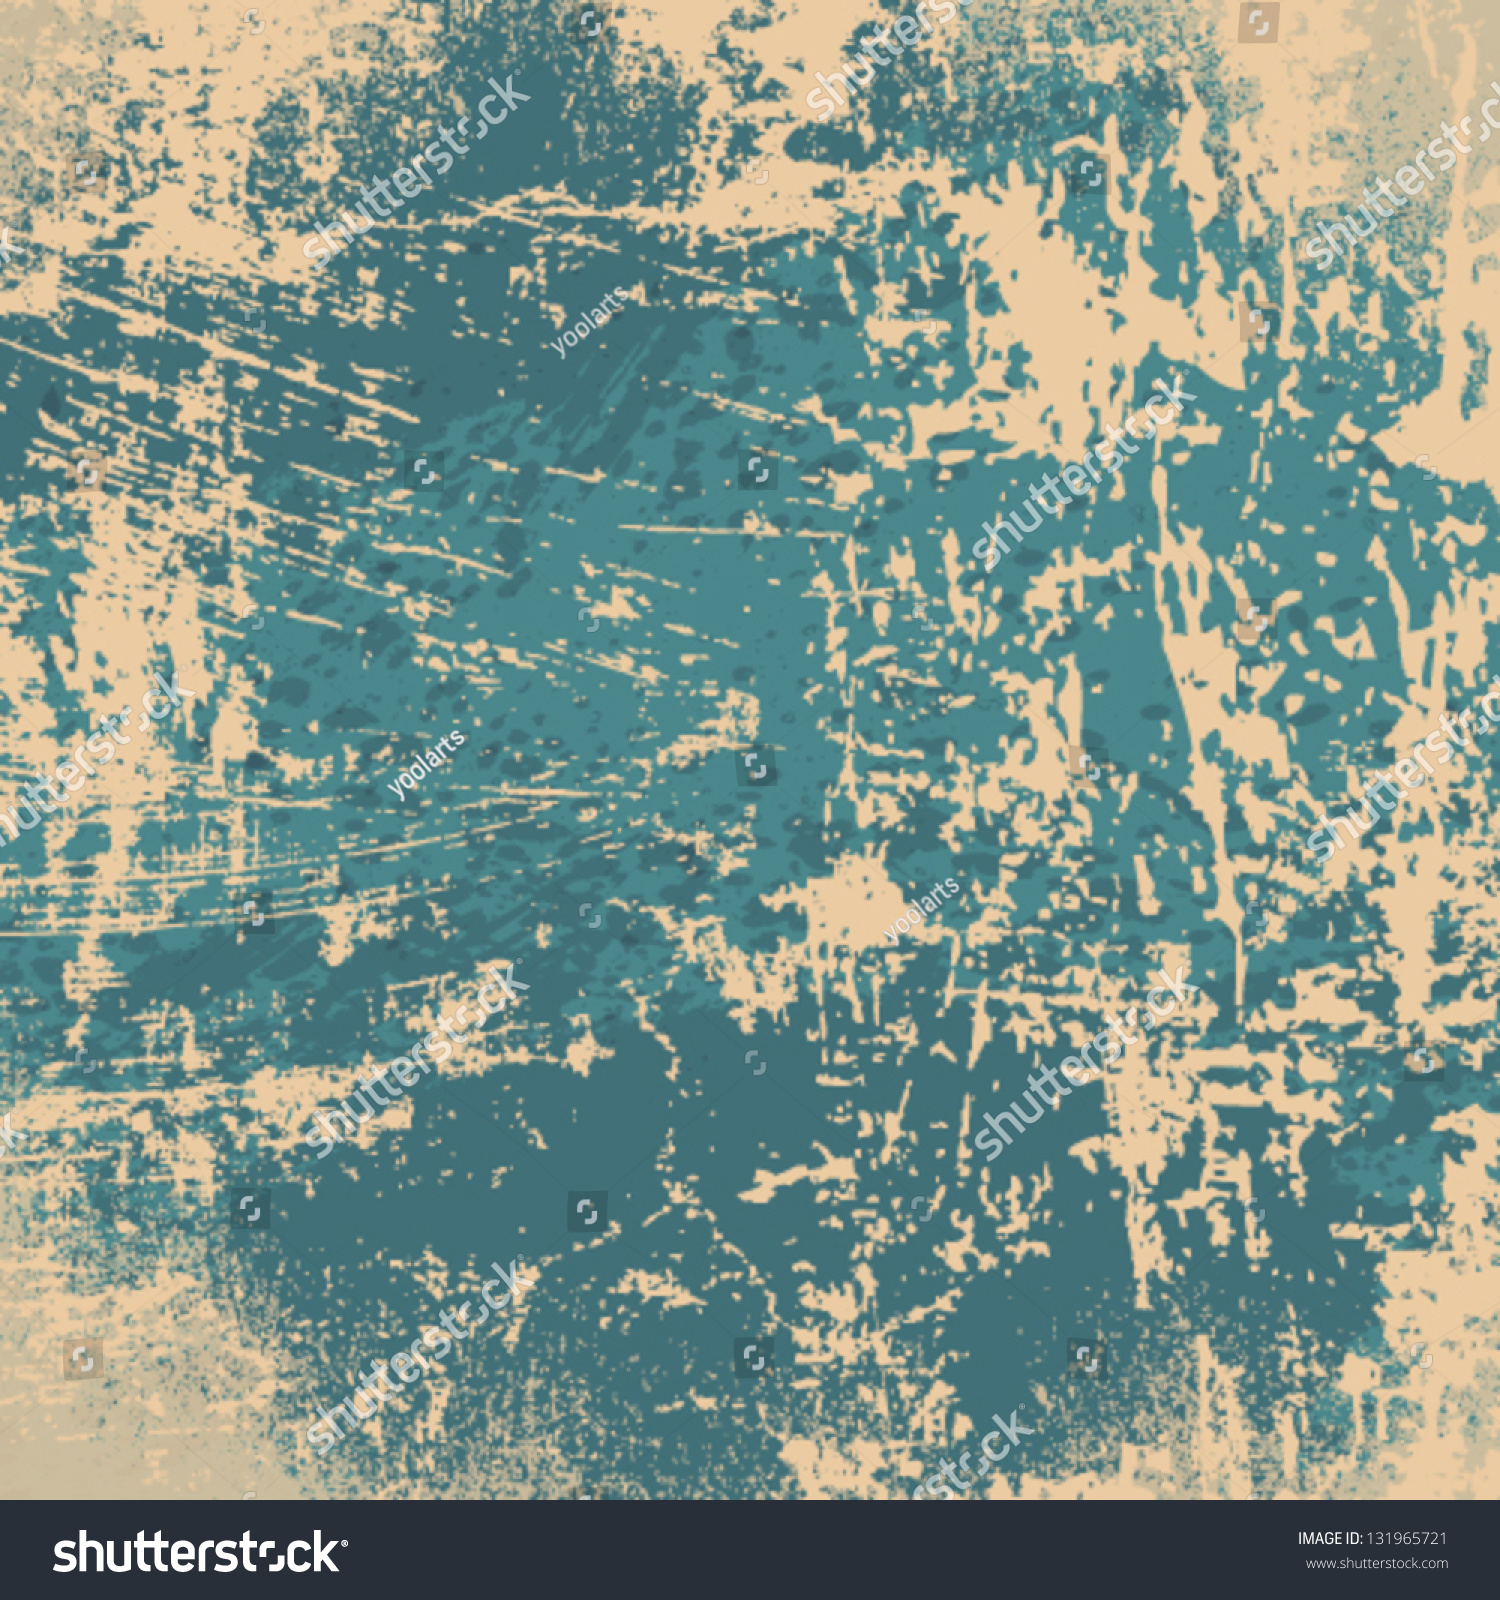 Vector Grunge Paper Texture Background Stock Vector Royalty Free 131965721